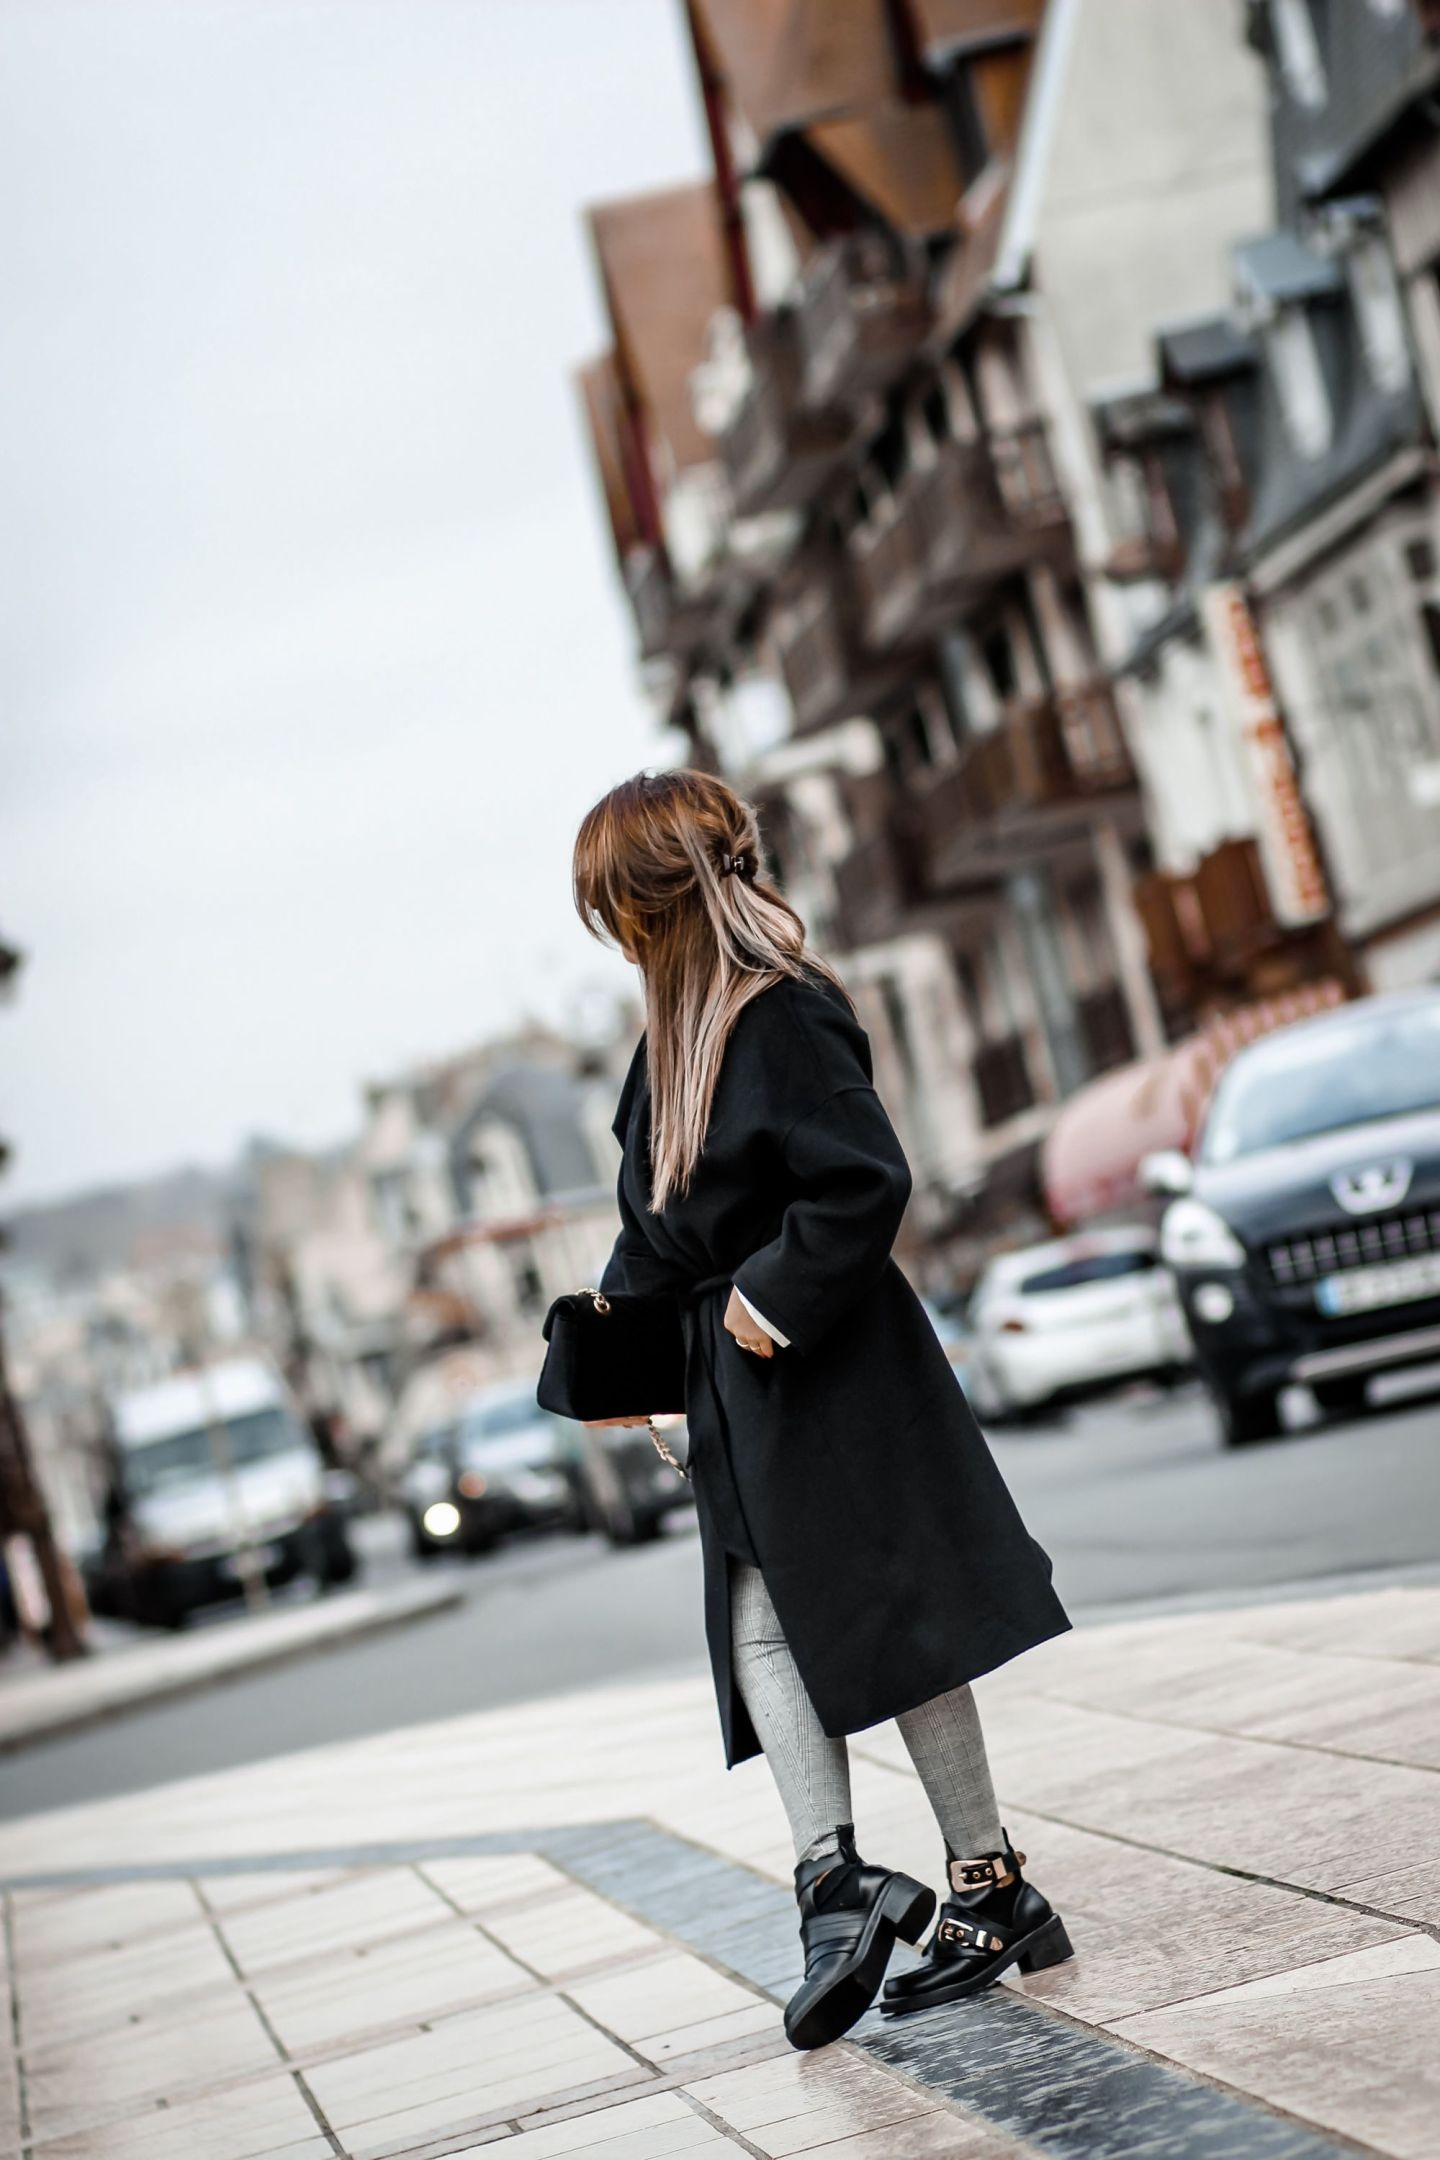 blogueuse mode, the green ananas, blog mode, blog, zara, manteau peignoir, pantalon prince de galles, inspi gucci, chemise blanche femme, manteau noir femme, manteau loose, boots balanciaga, le manteau peignoir